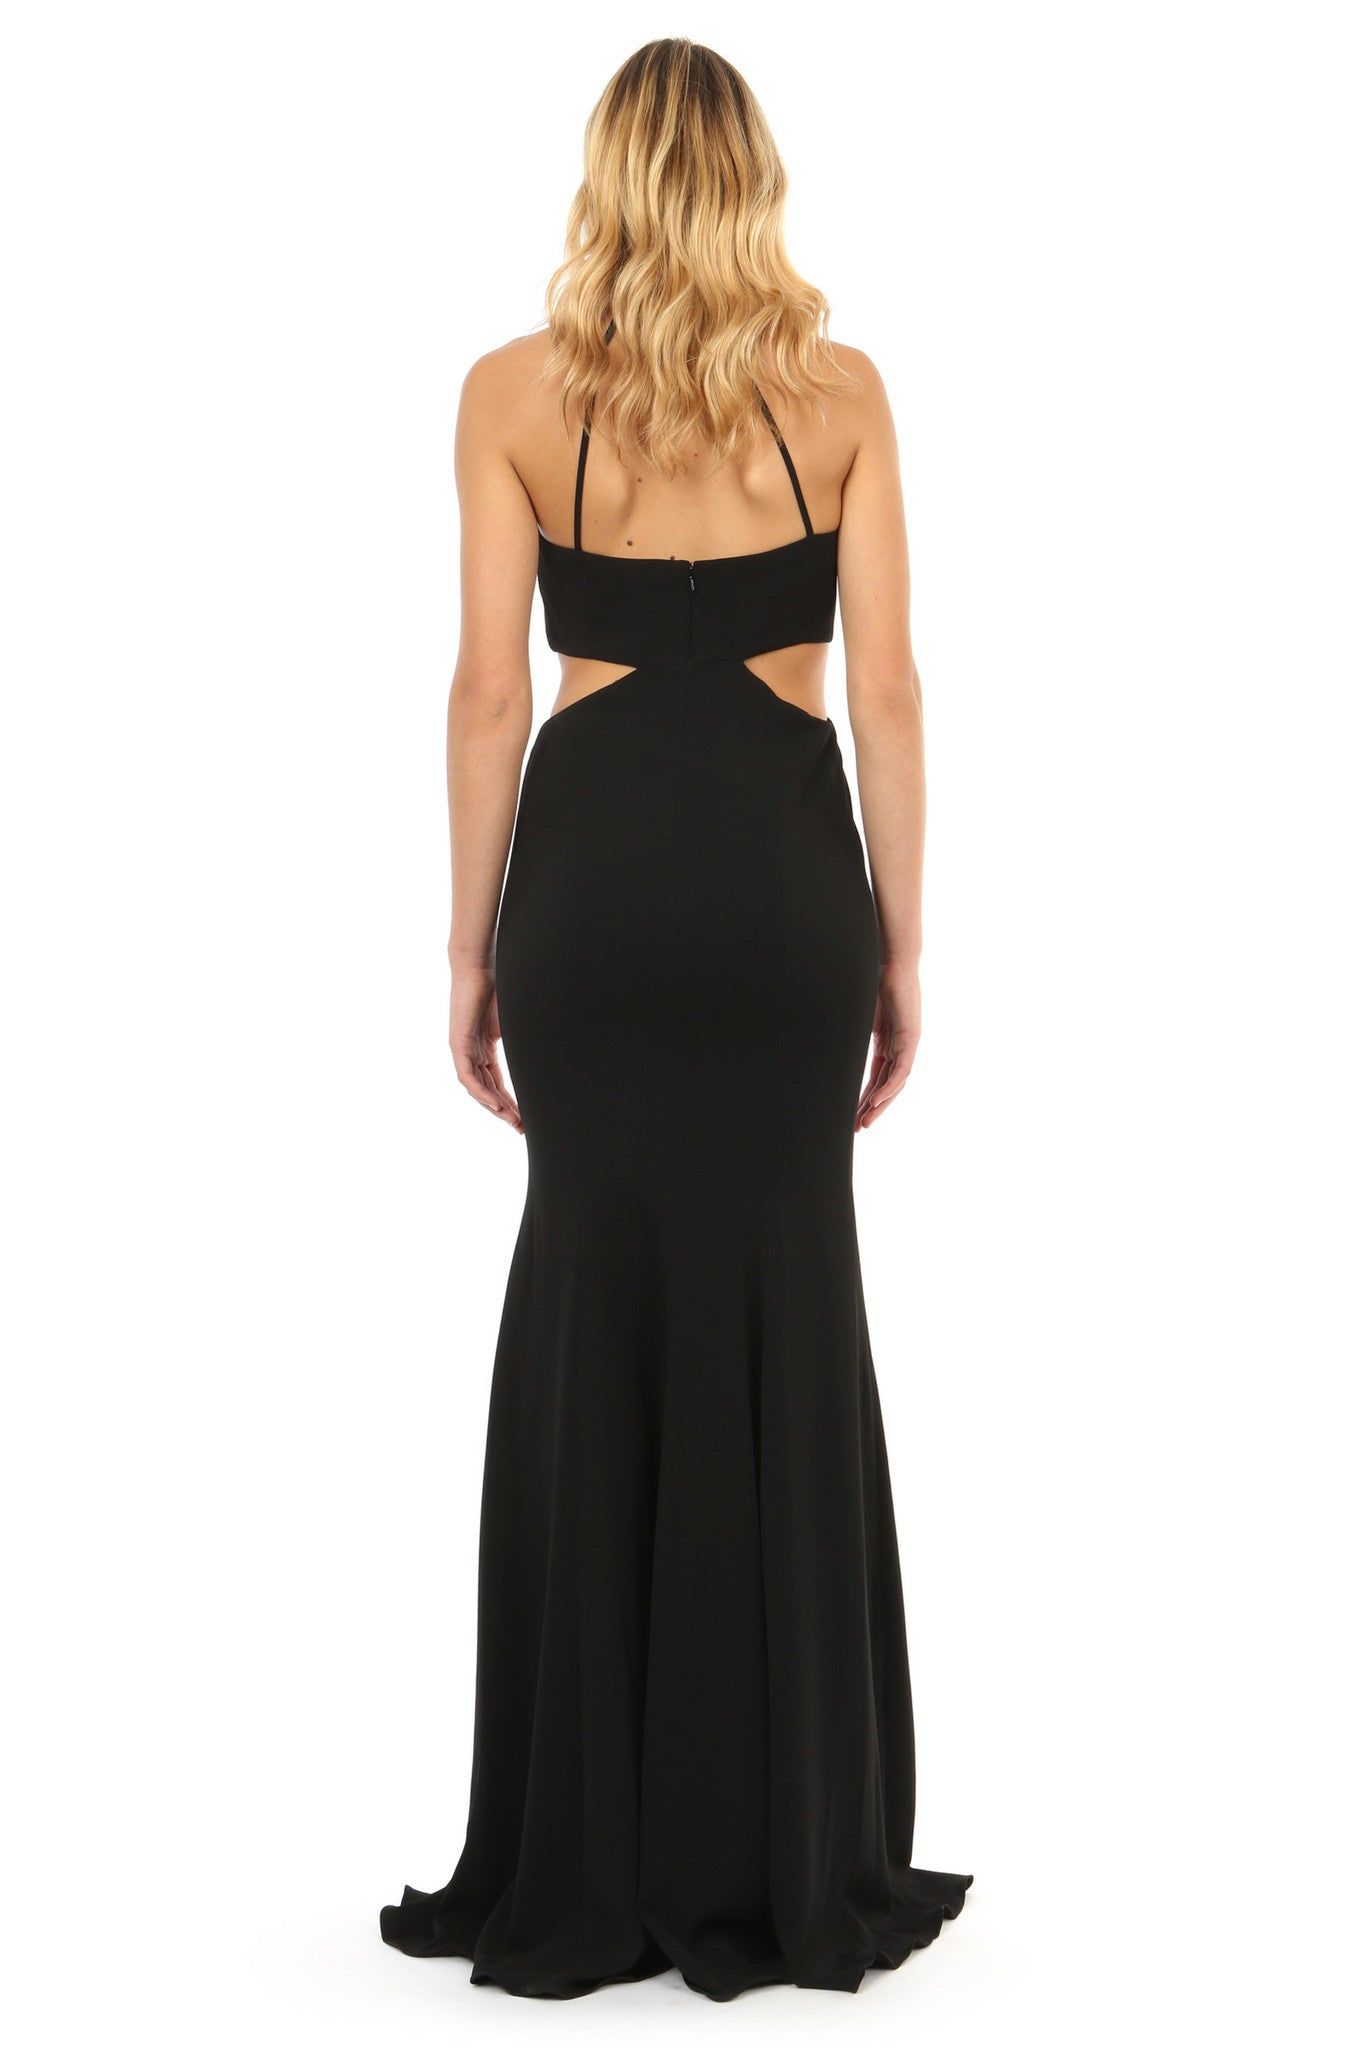 Jay Godfrey Black Cut-Out High Neck Gown - Back View